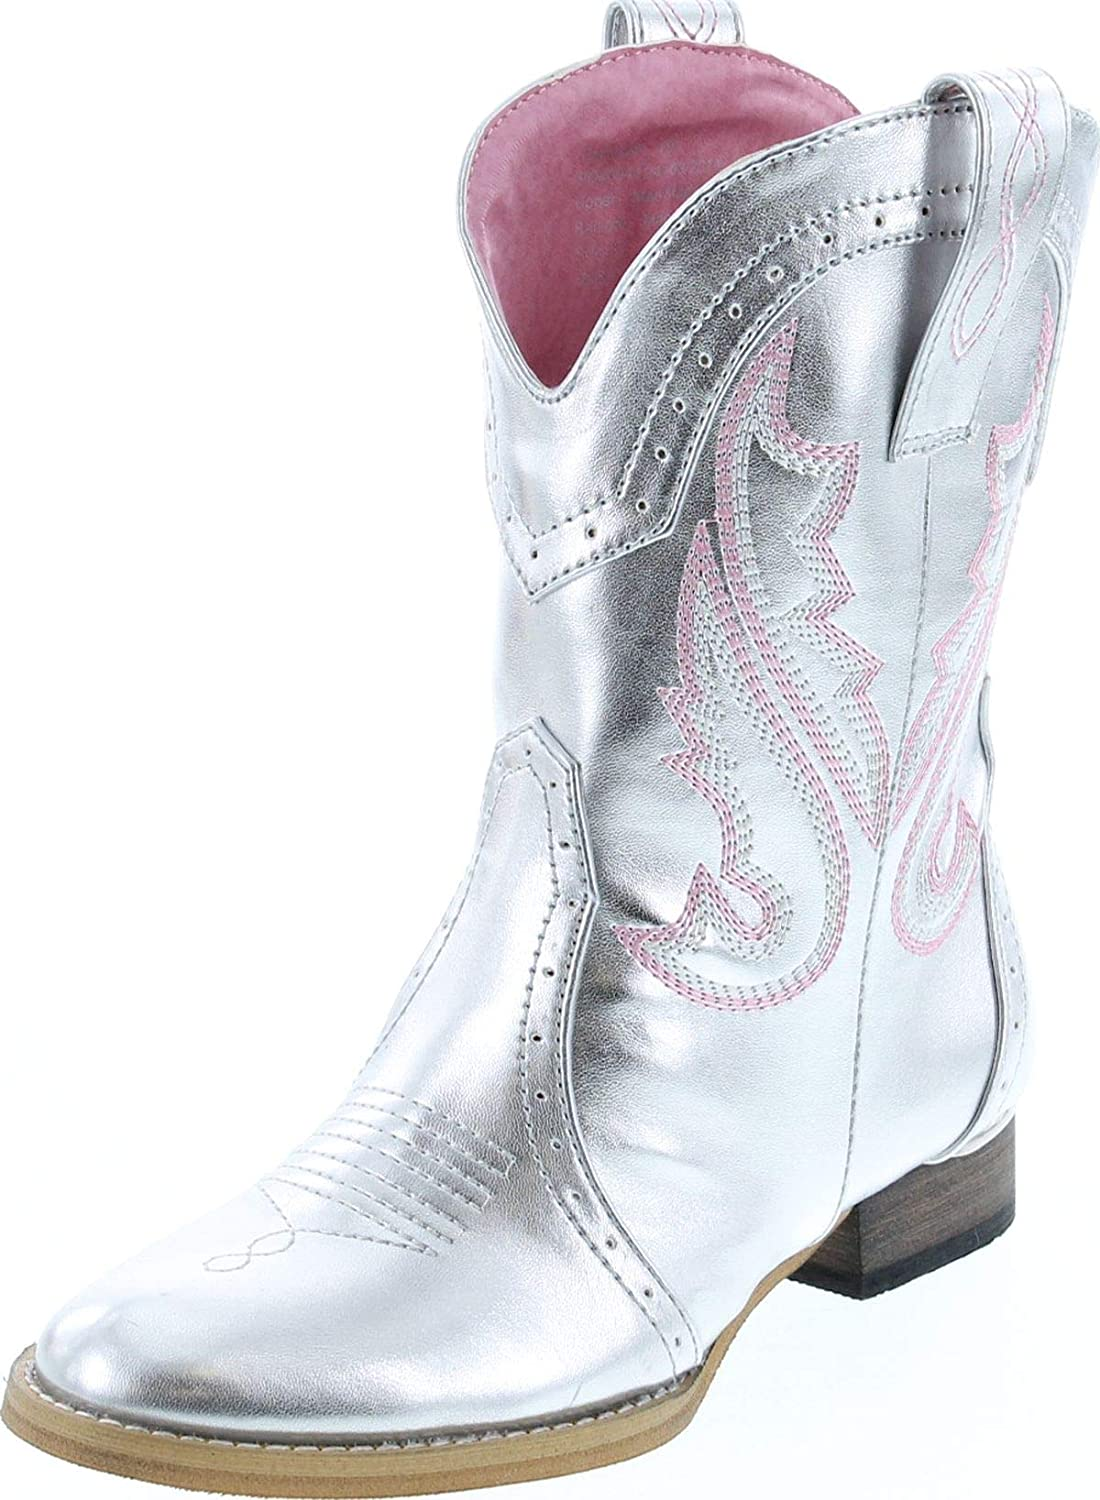 silver boots girls